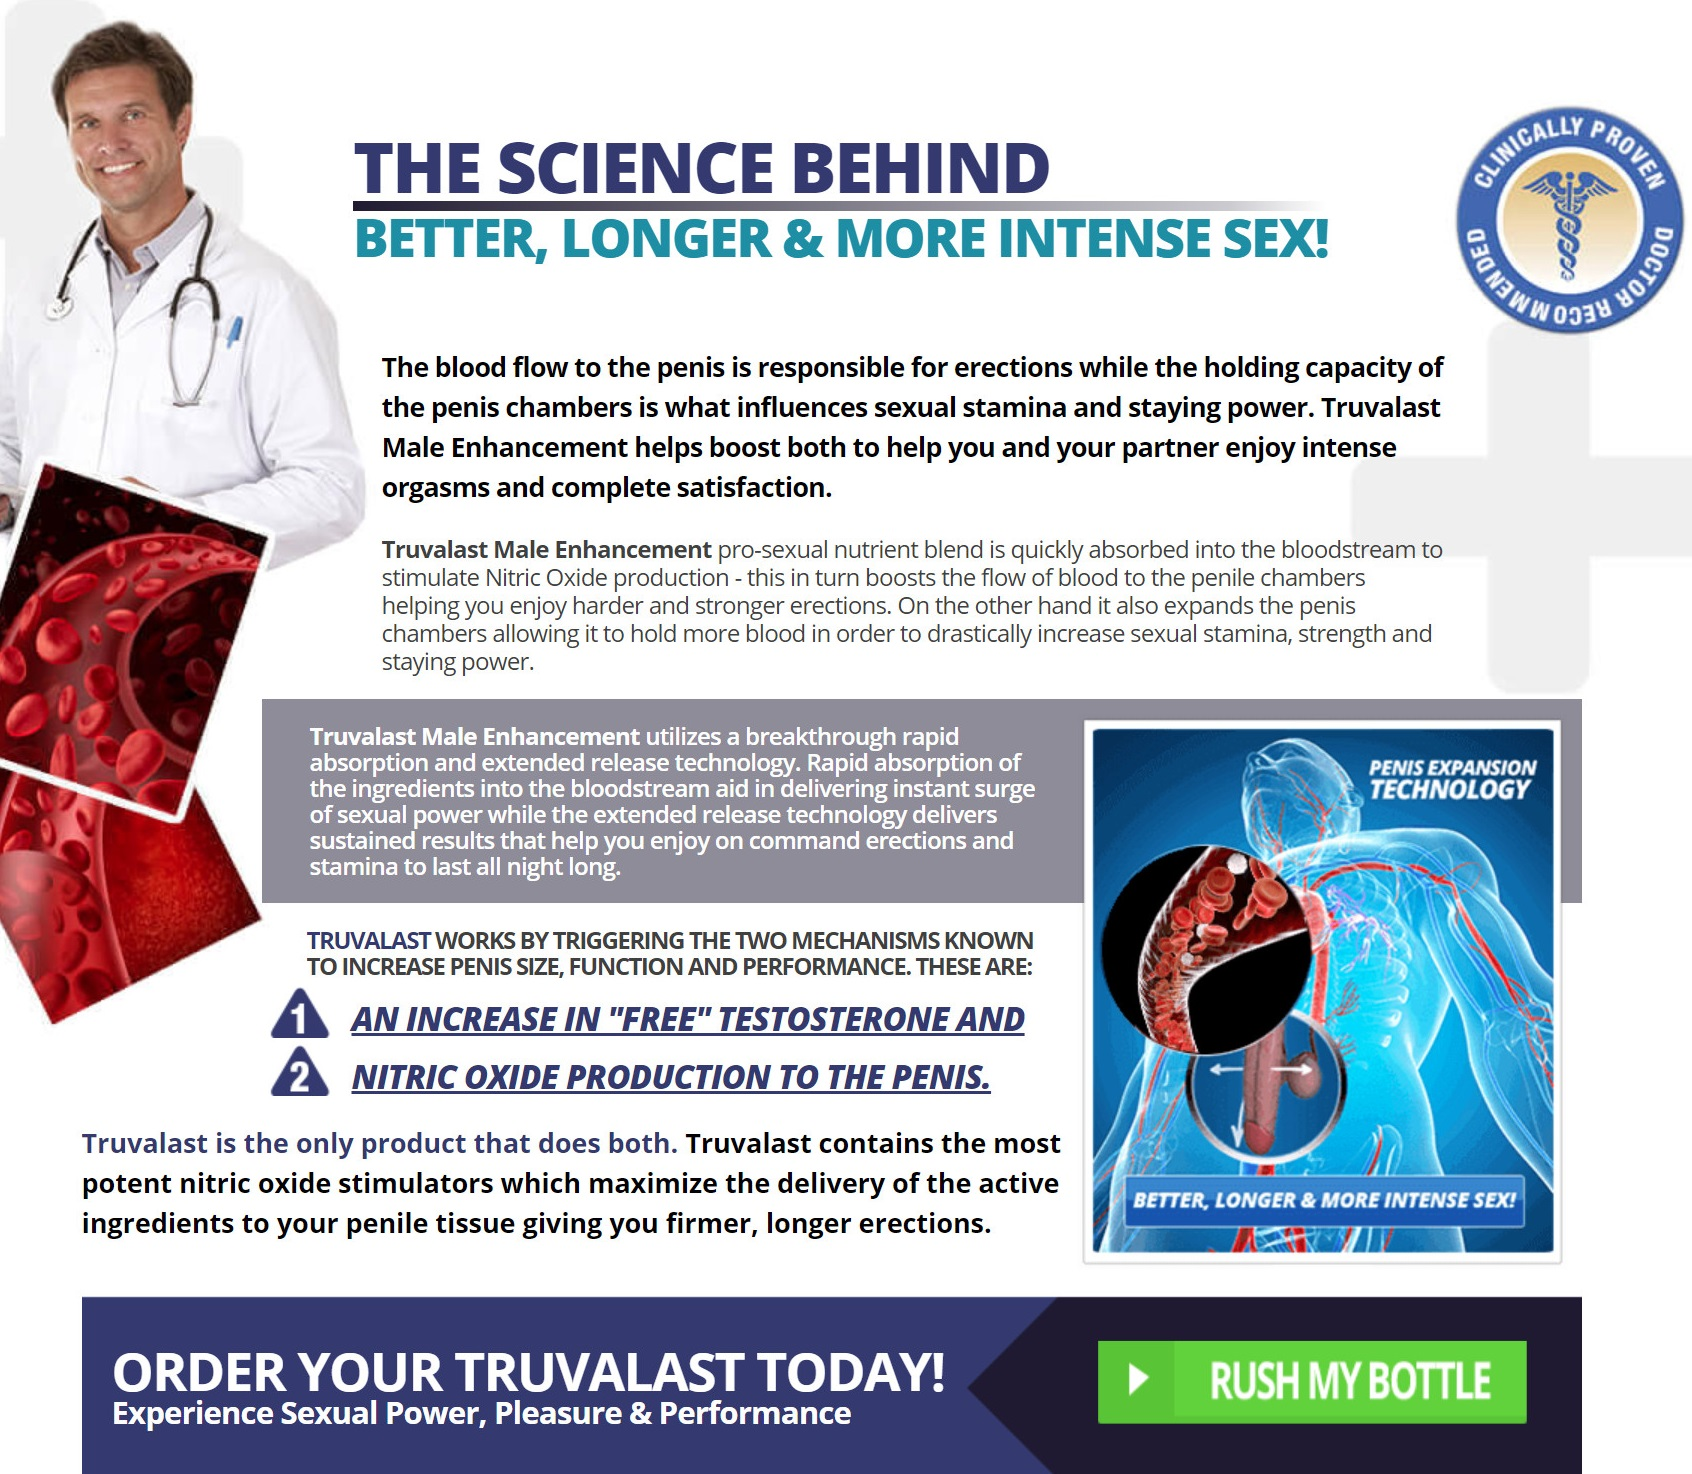 Truvalast Male Enhancement Science Behind